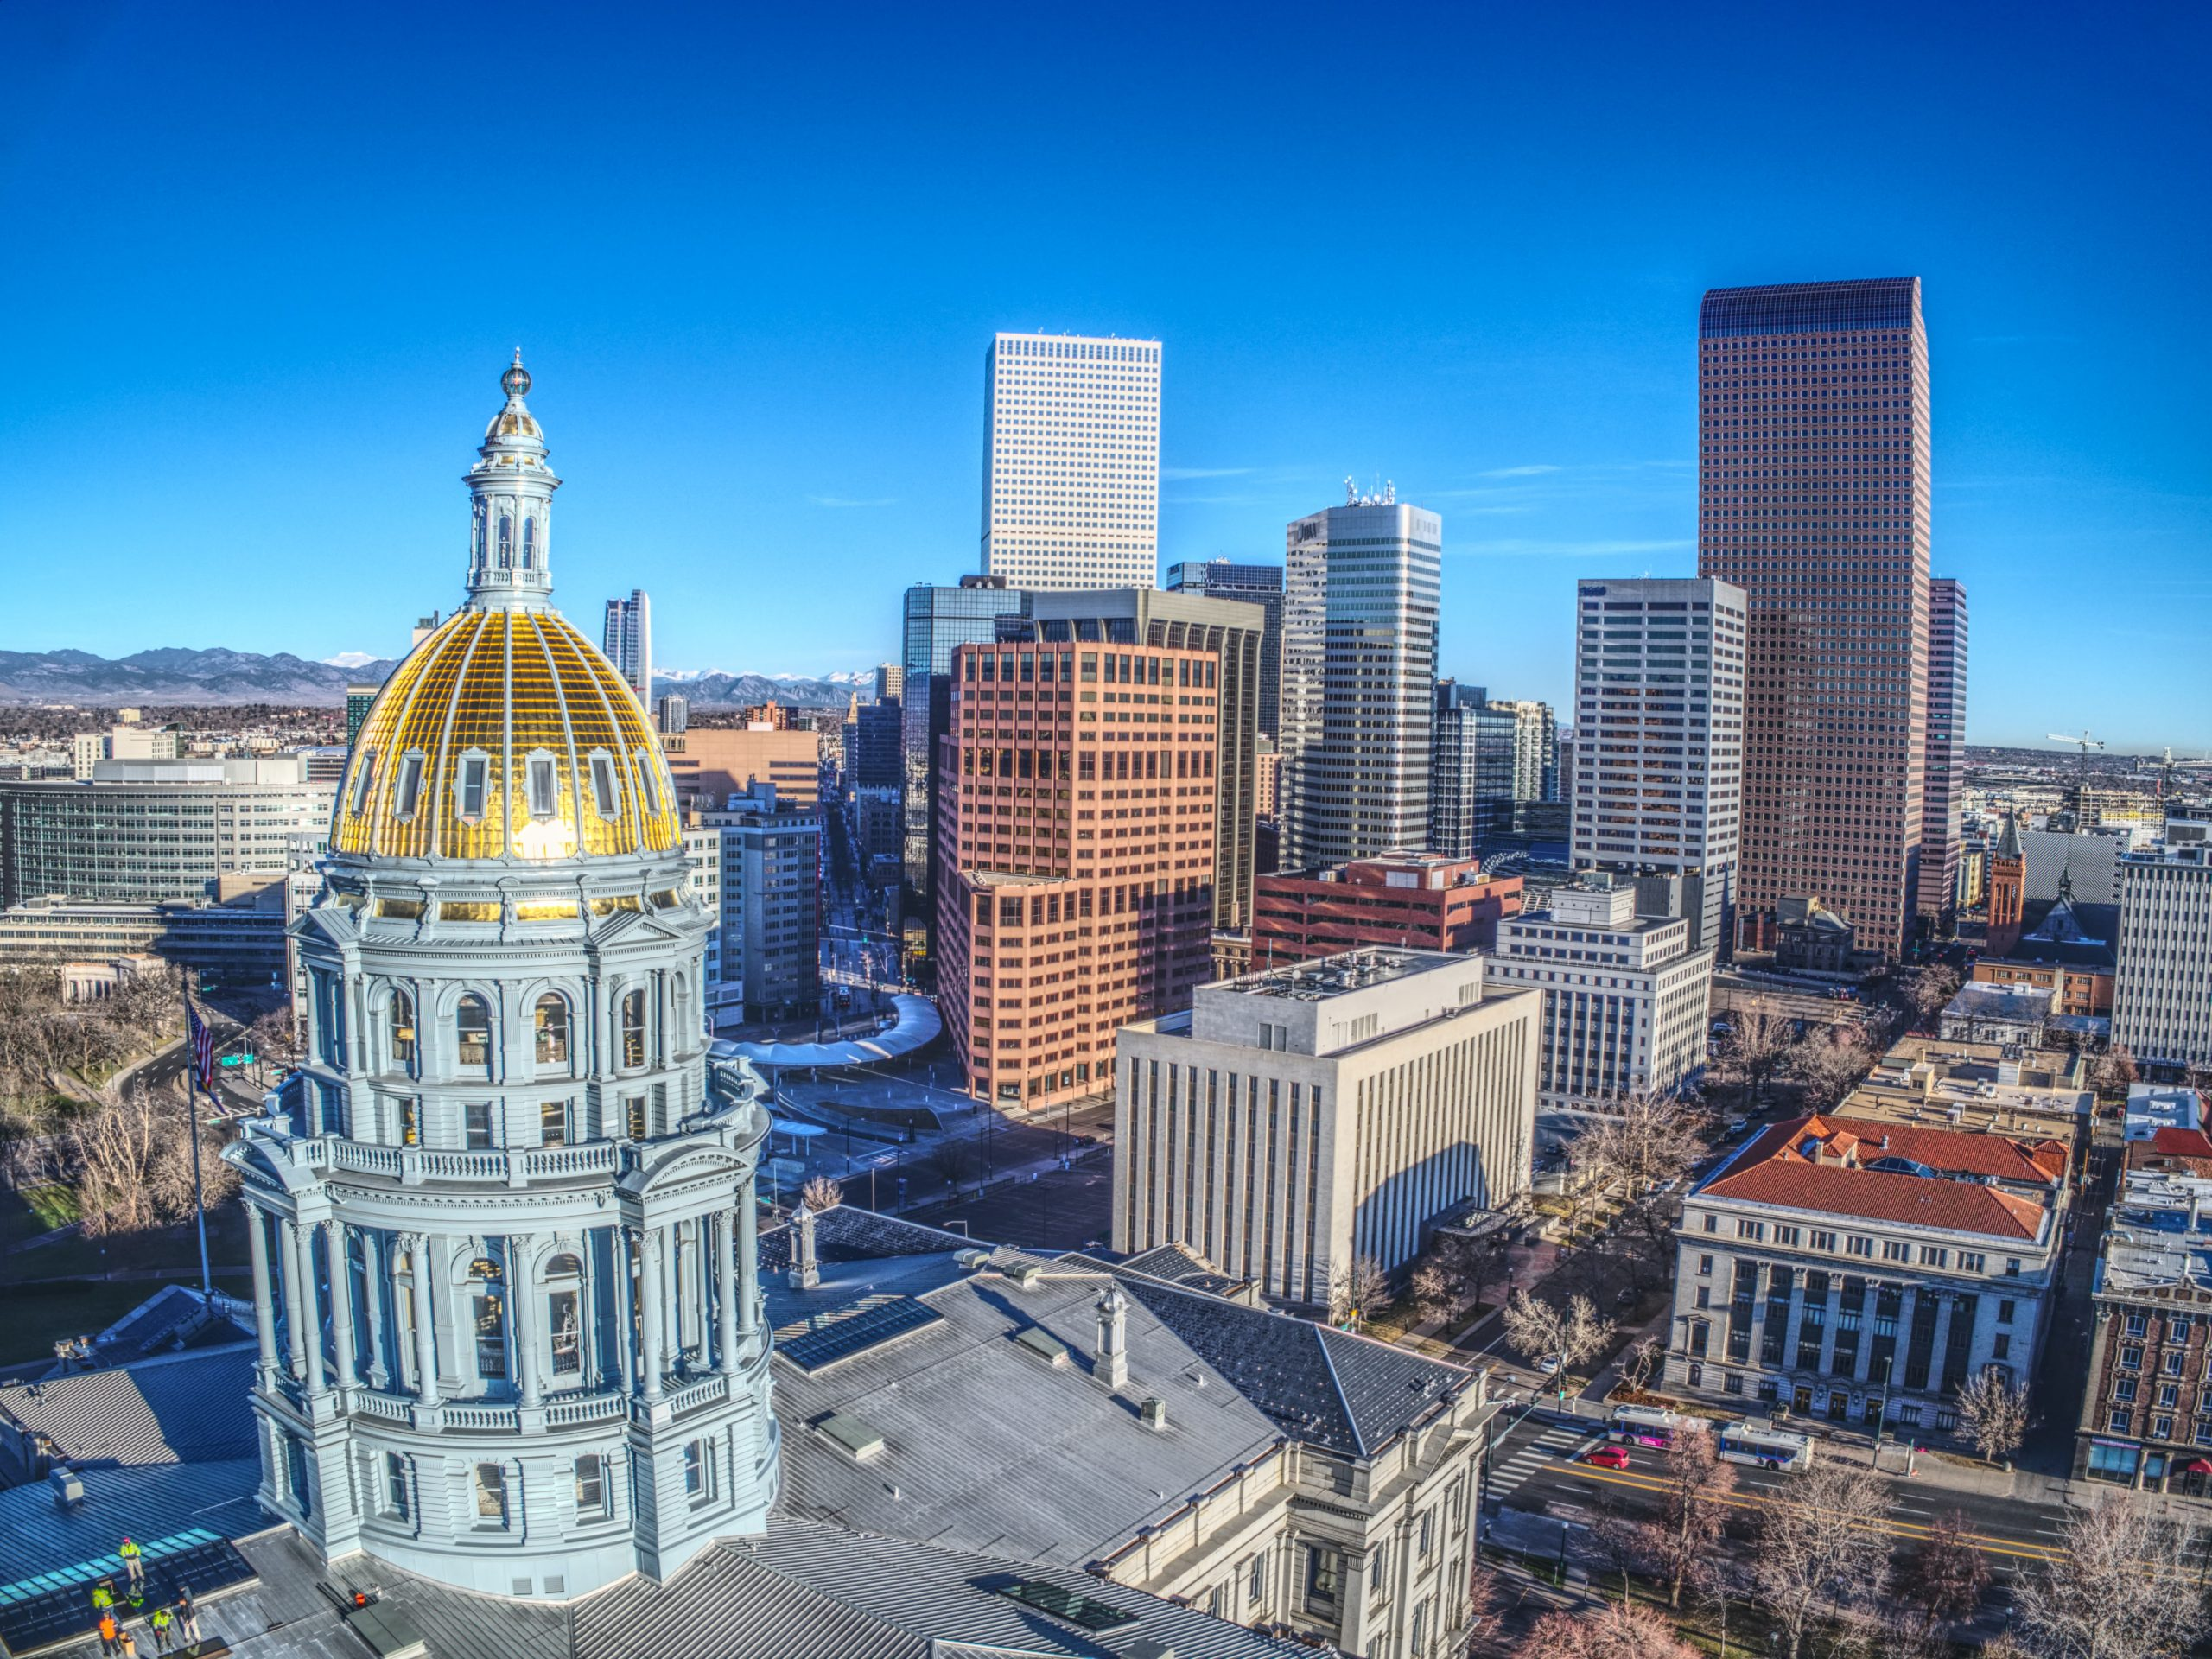 Image of the Denver skyline featuring the State Capitol Building